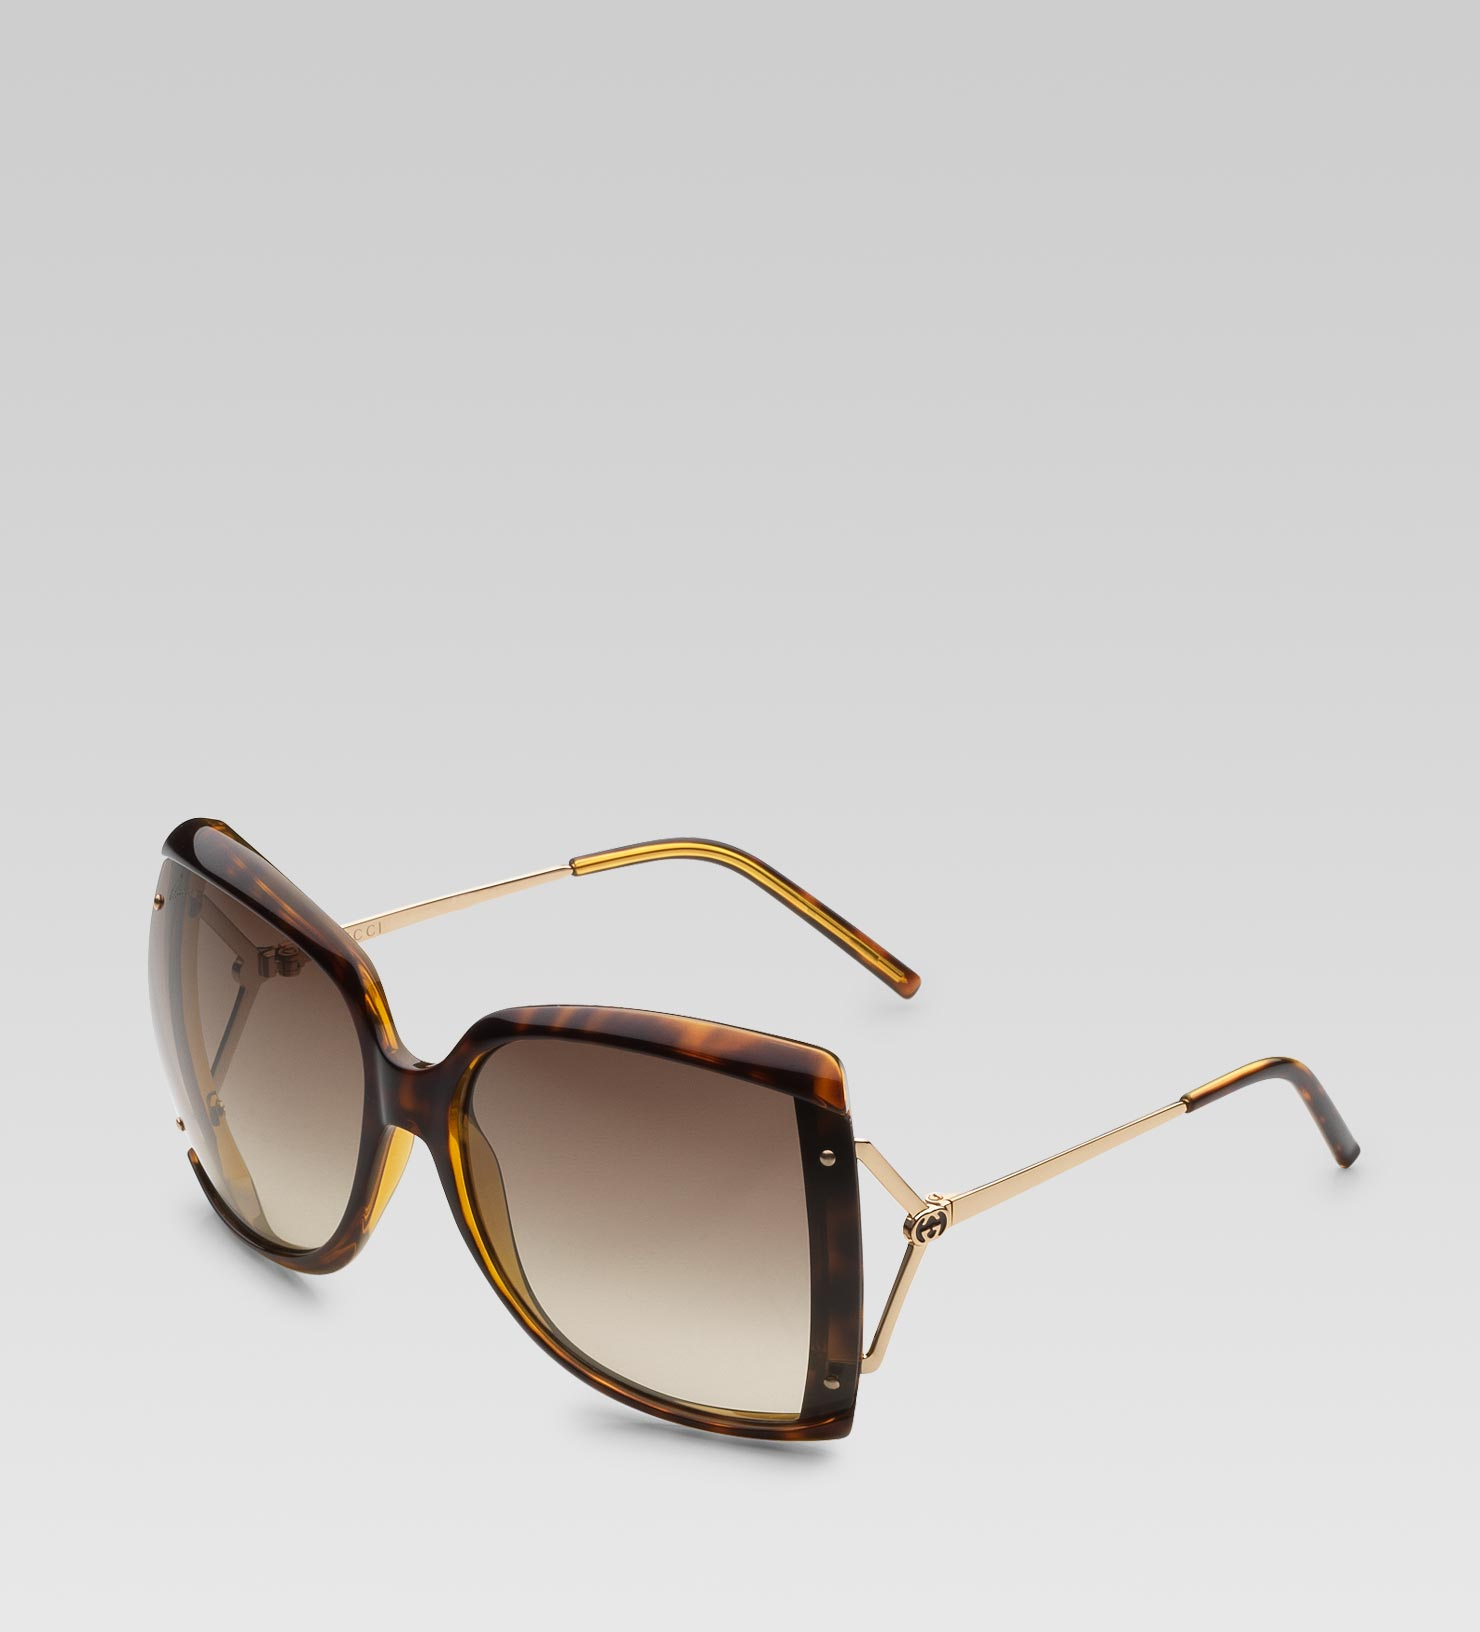 32bbf136c10 Lyst - Gucci Large Square Frame Sunglasses with GG Logo and Web On ...